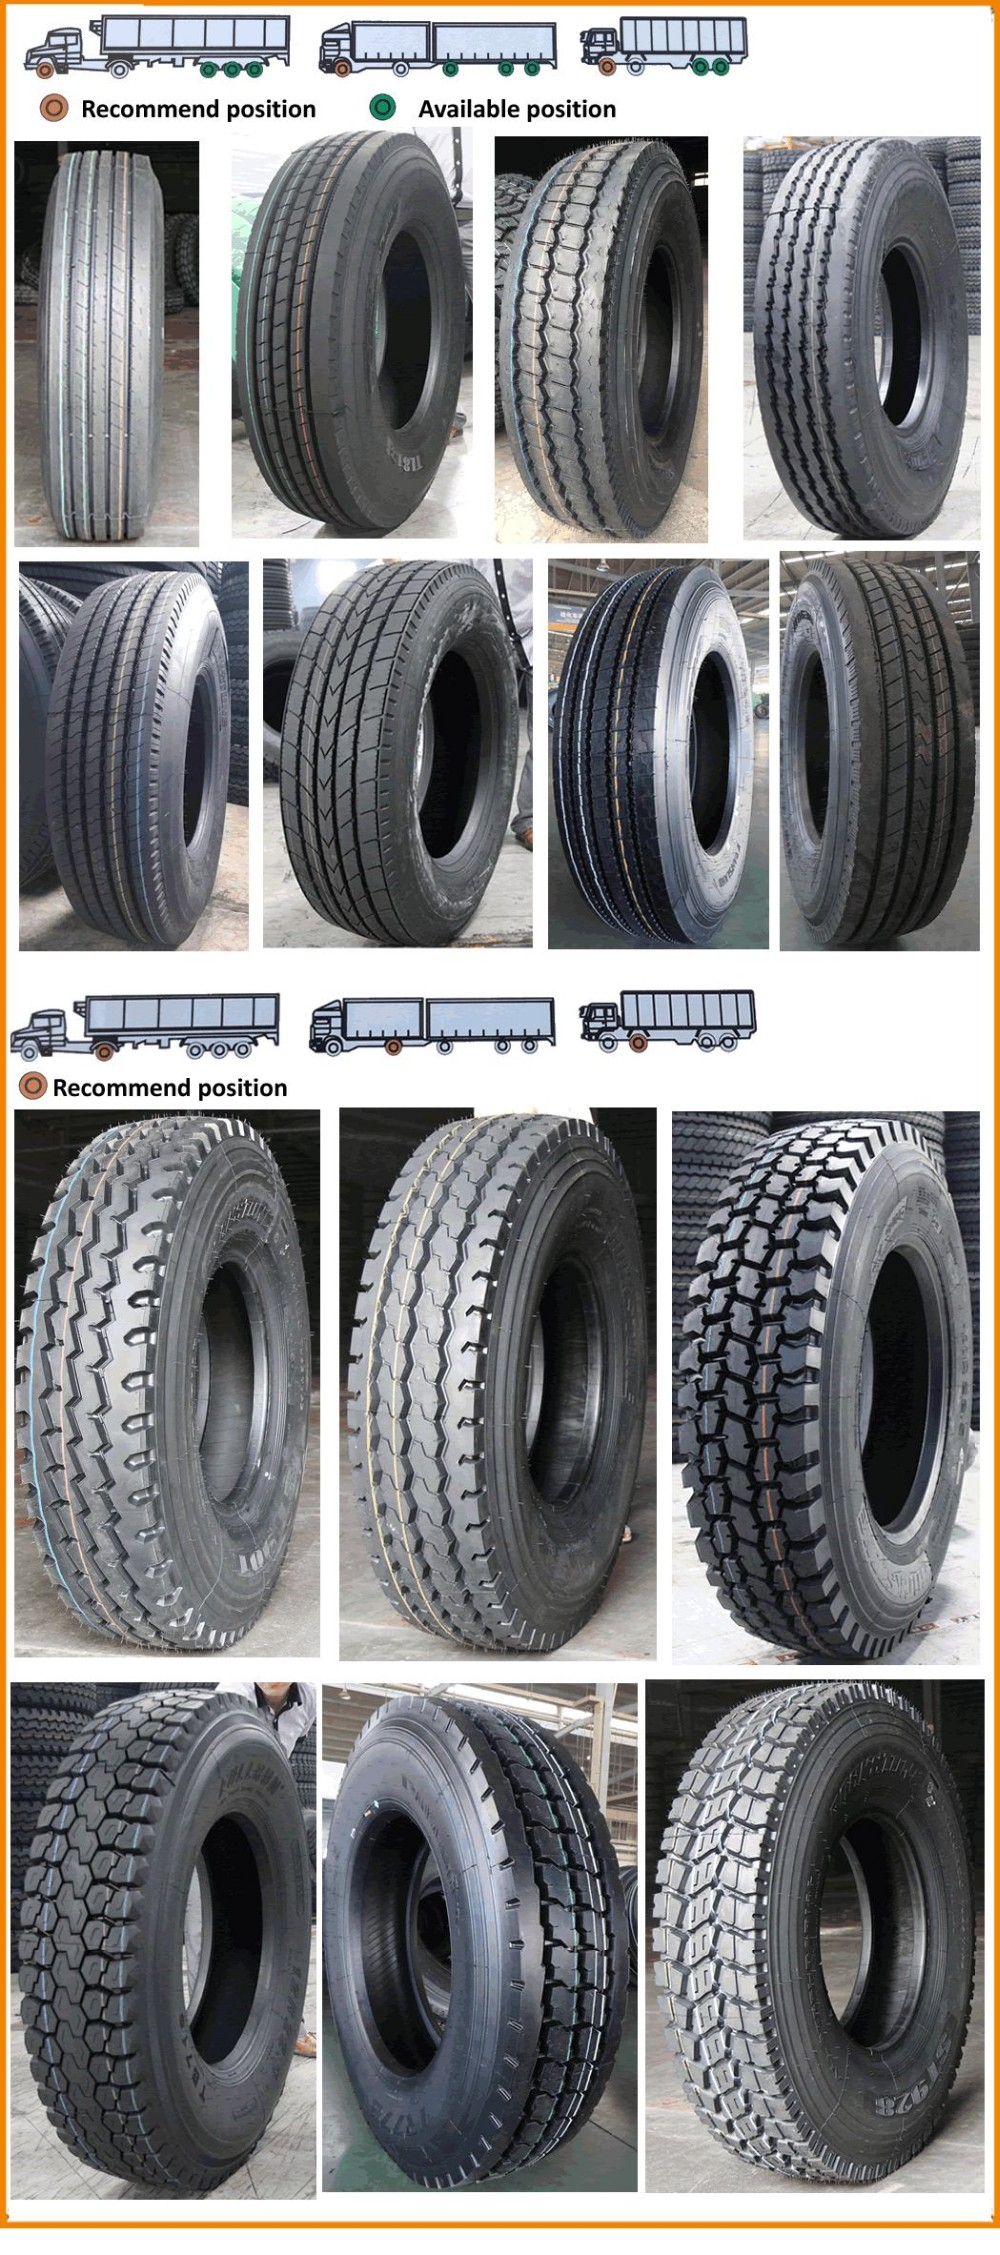 Business Partner Wanted In China Imports Tires To Pakistan